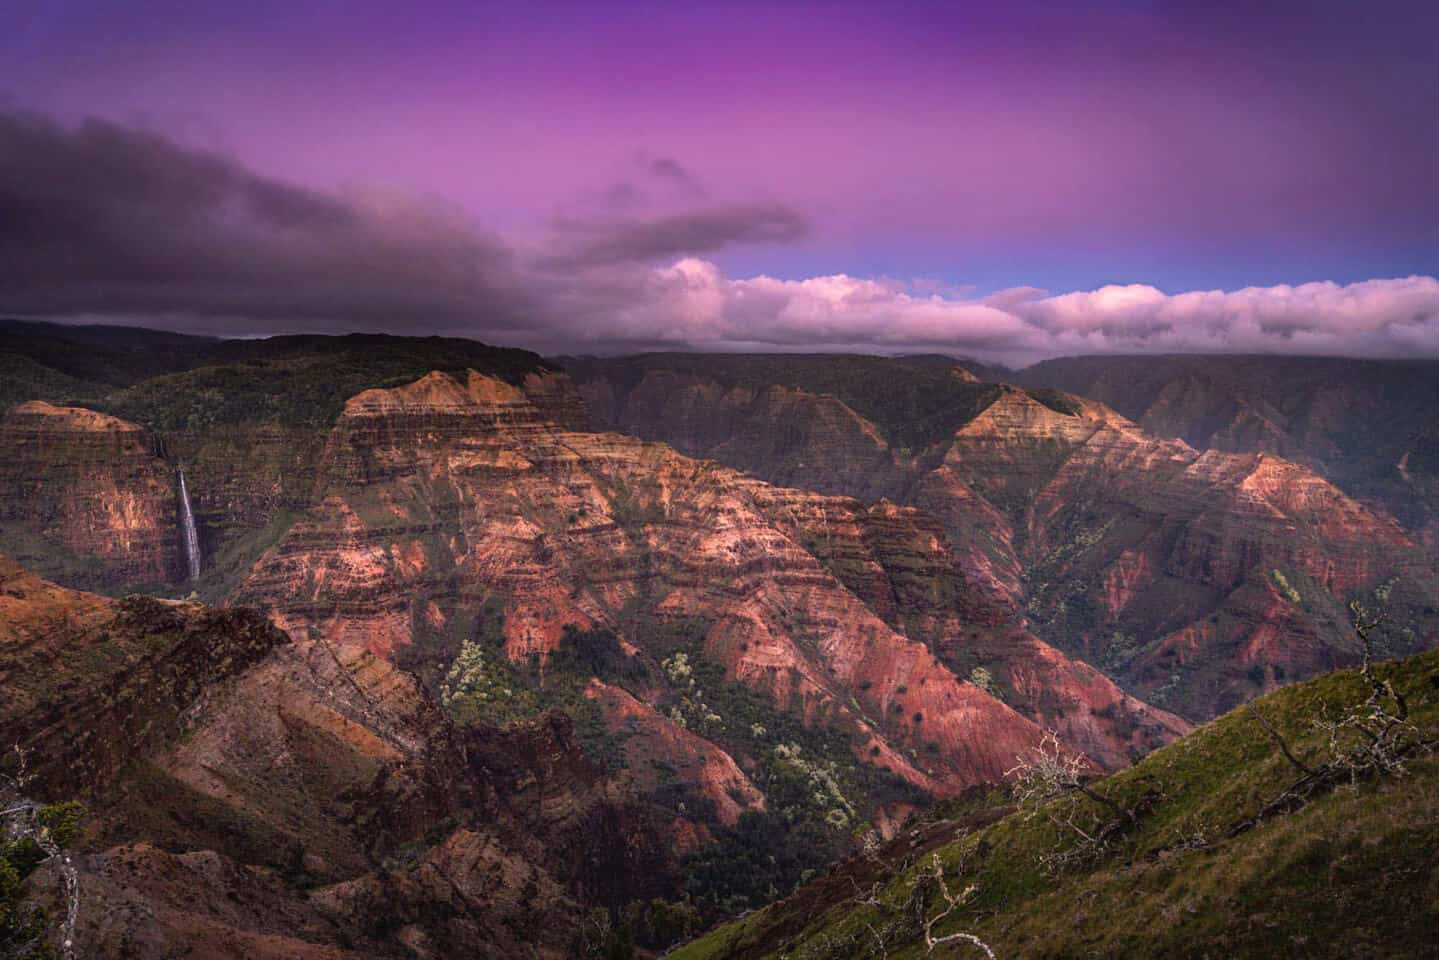 On day 2 of your itinerary for Kauai, visit the Waimea Canyon for sunset.